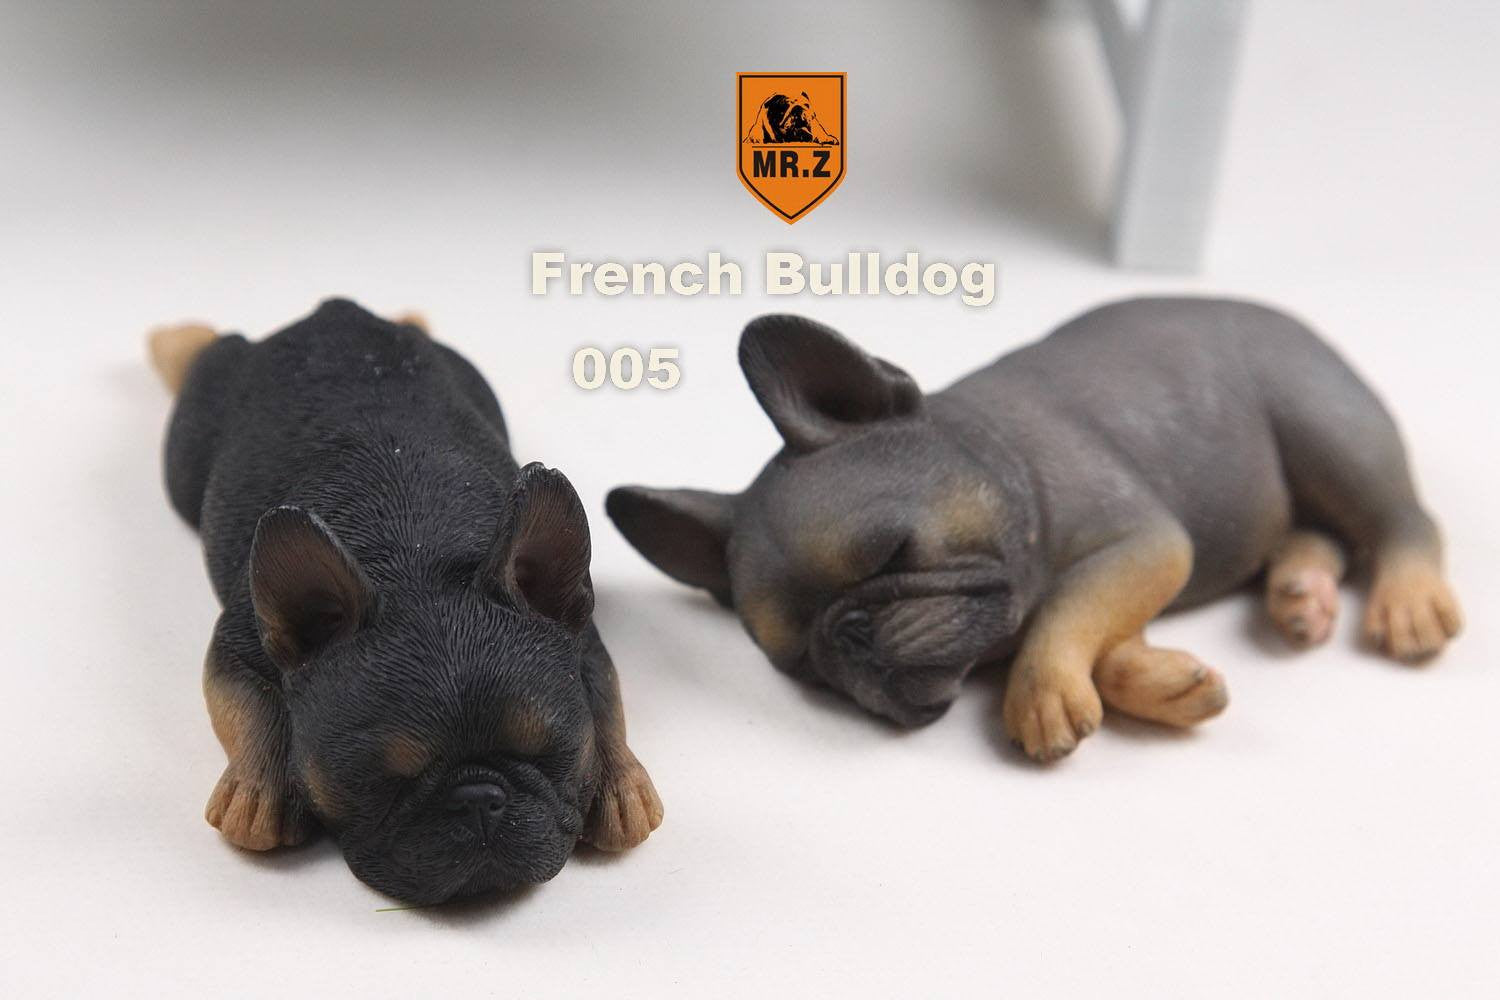 MR.Z - Real Animal Series No.9 - 1/6th Scale French Bulldog (Sleep Mode) 001-005 - Marvelous Toys - 22